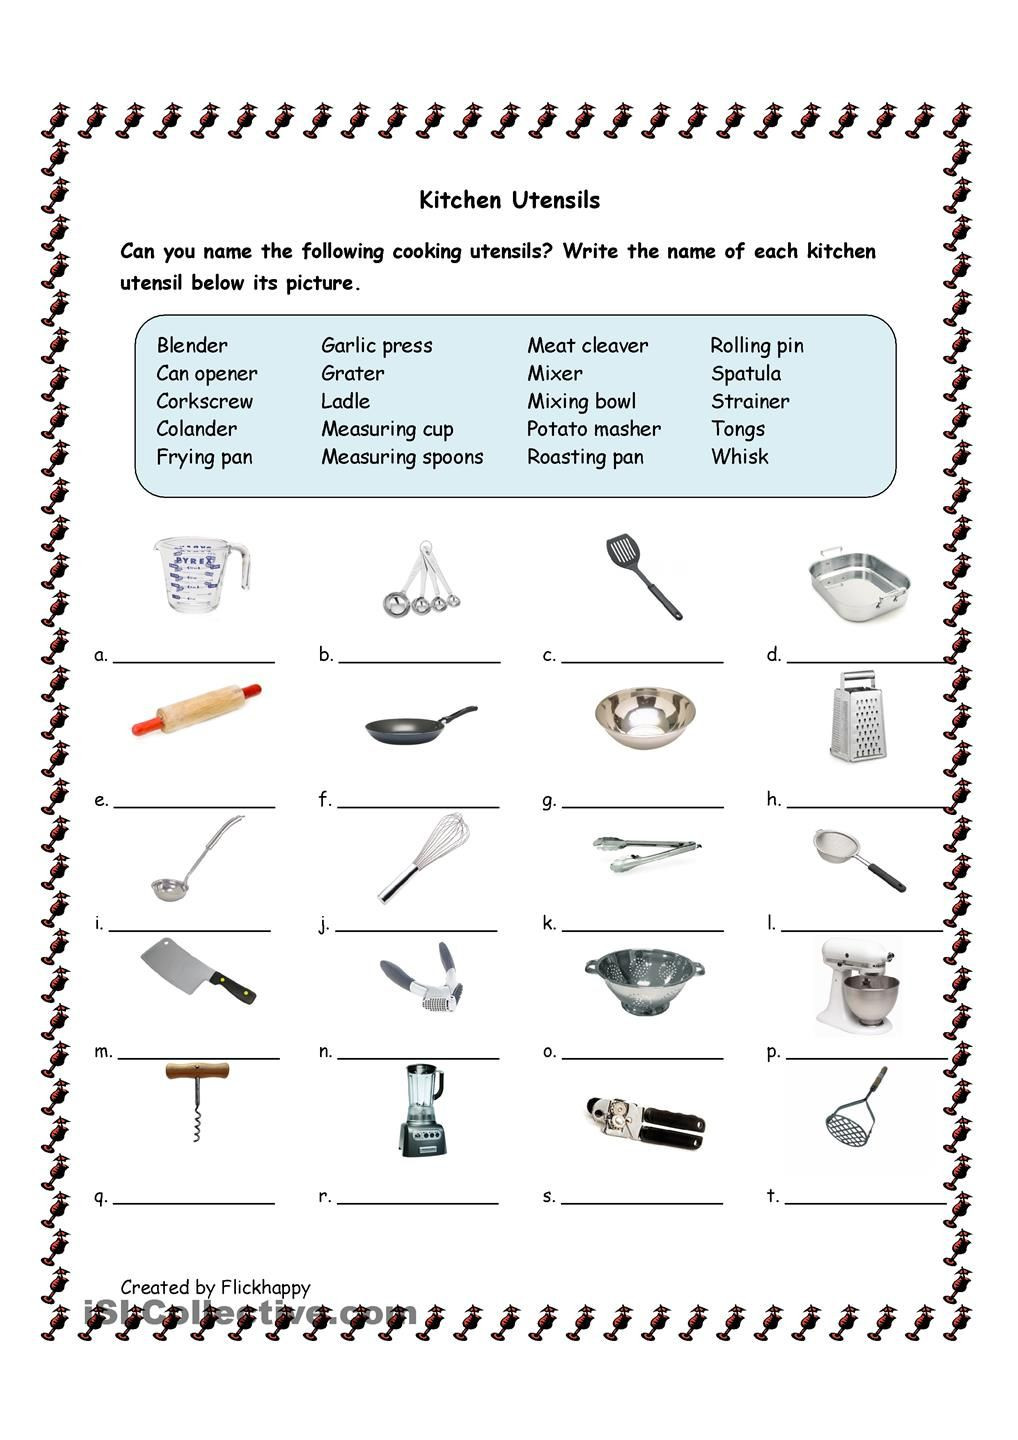 High School Economics Worksheets Kitchen Utensils with Life Skills Classroom Cooking